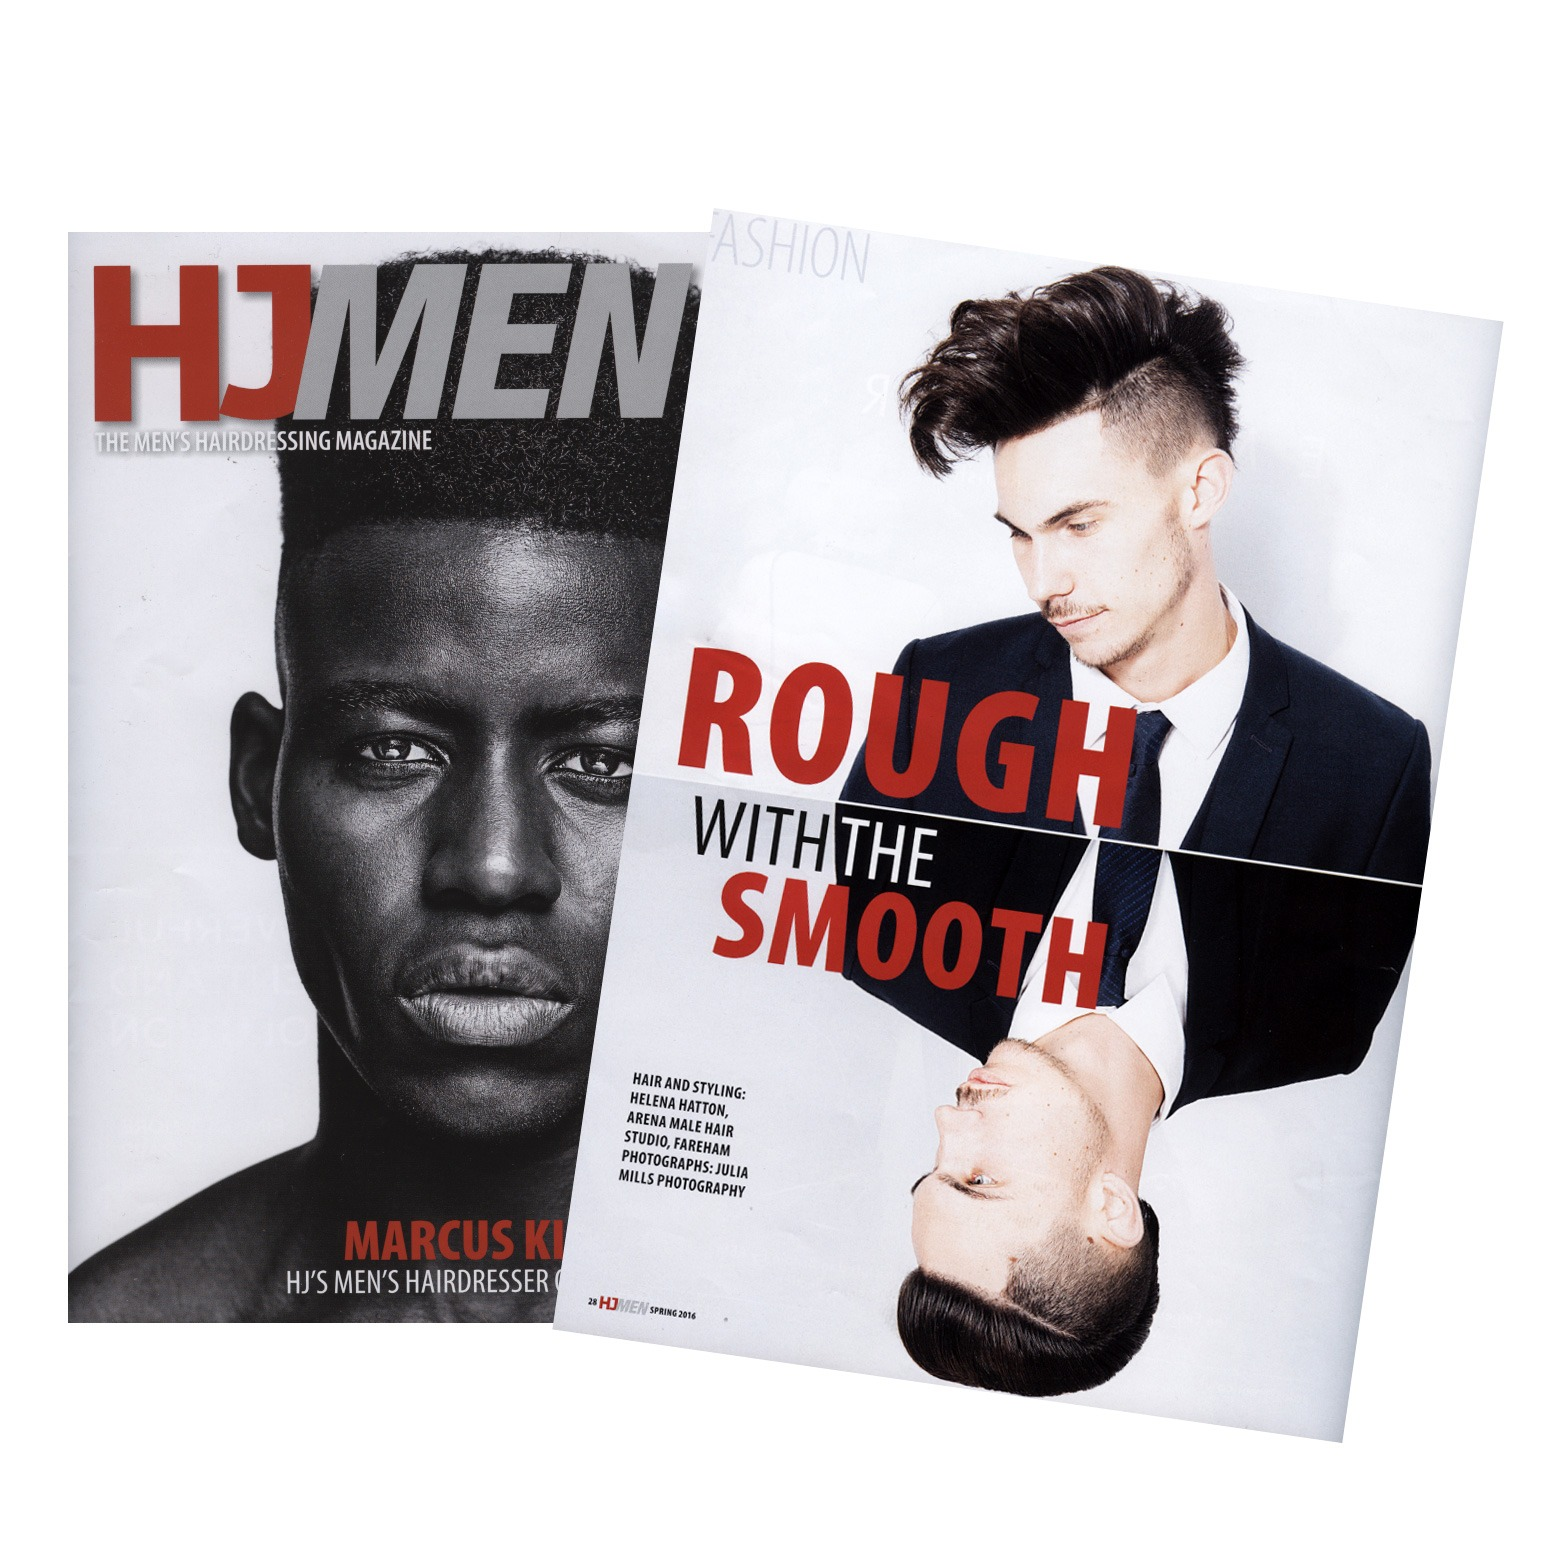 men's hairdressing journal mag 2016